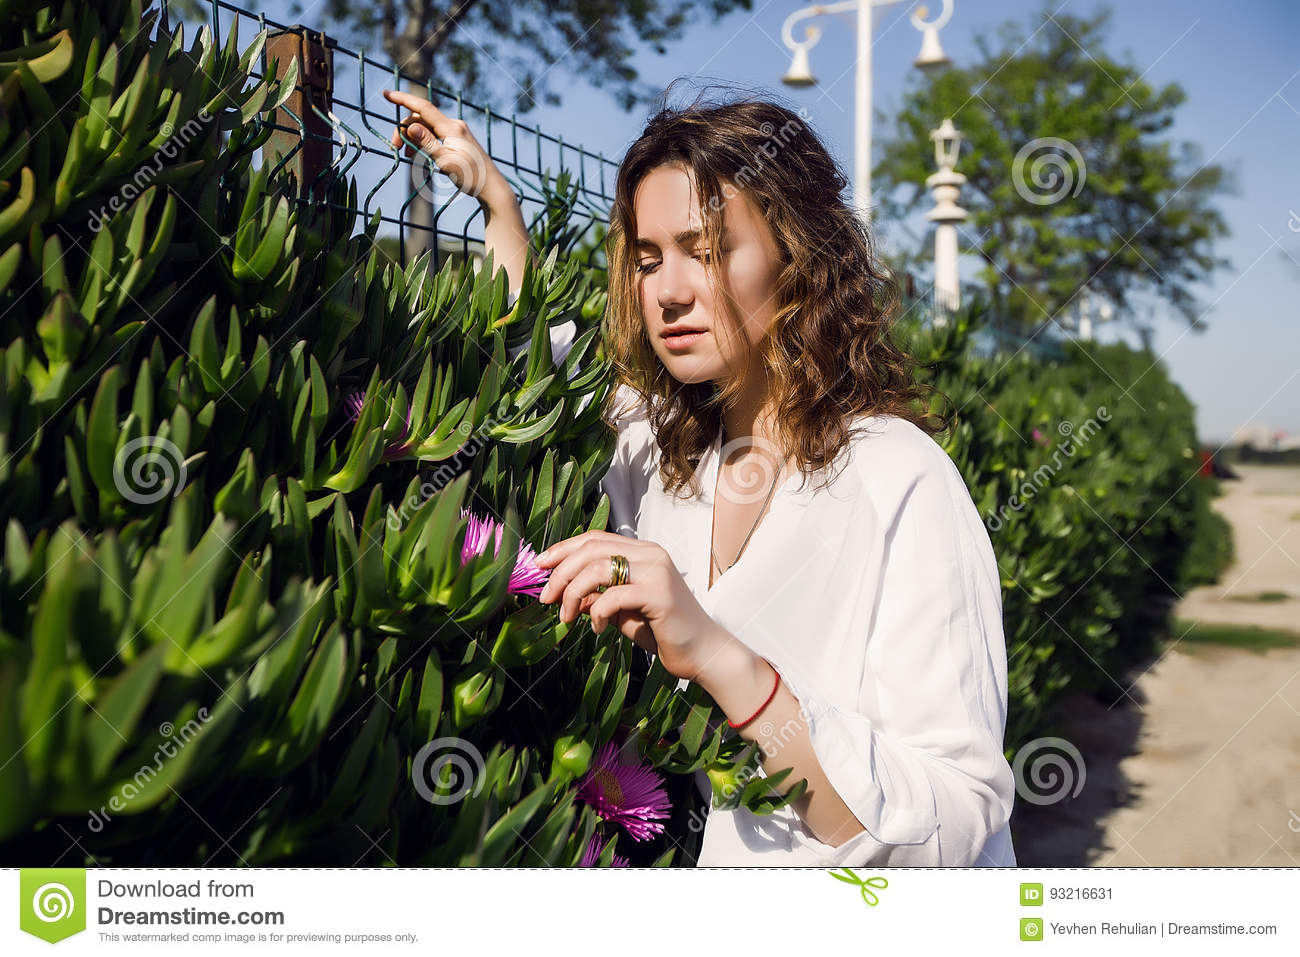 Beautiful Girl in a park, woman with curly hair.Summer sunny lifestyle fashion portrait of young stylish hipster woman,wearing cut